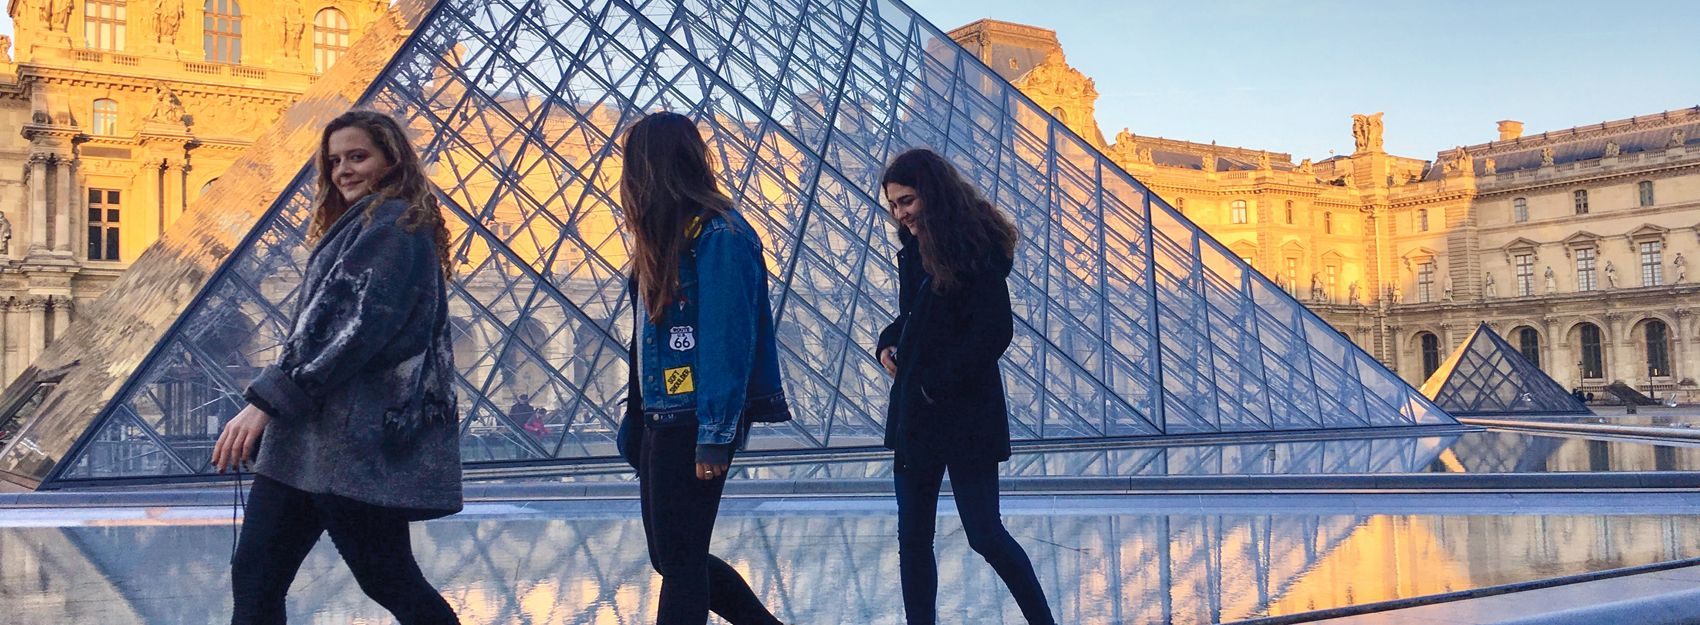 three students walking next to the glass pyramid of the Louvre in Paris, France